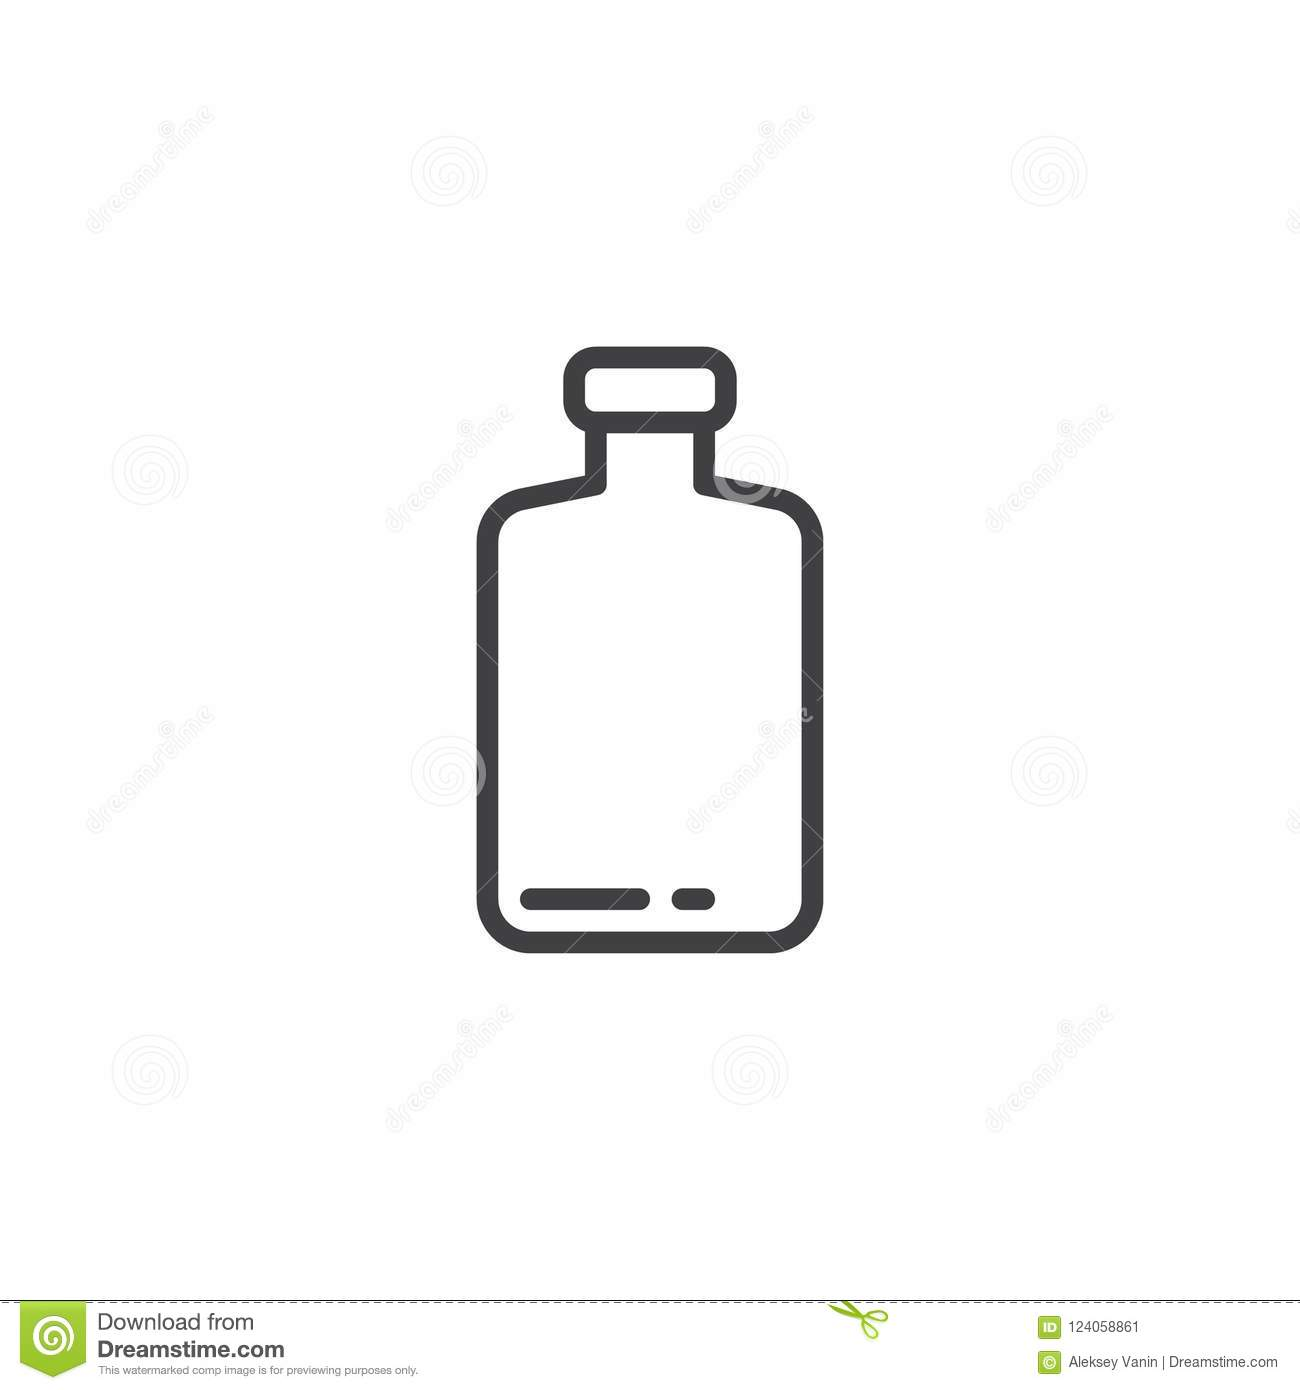 Empty bottle outline icon stock vector. Illustration of single.